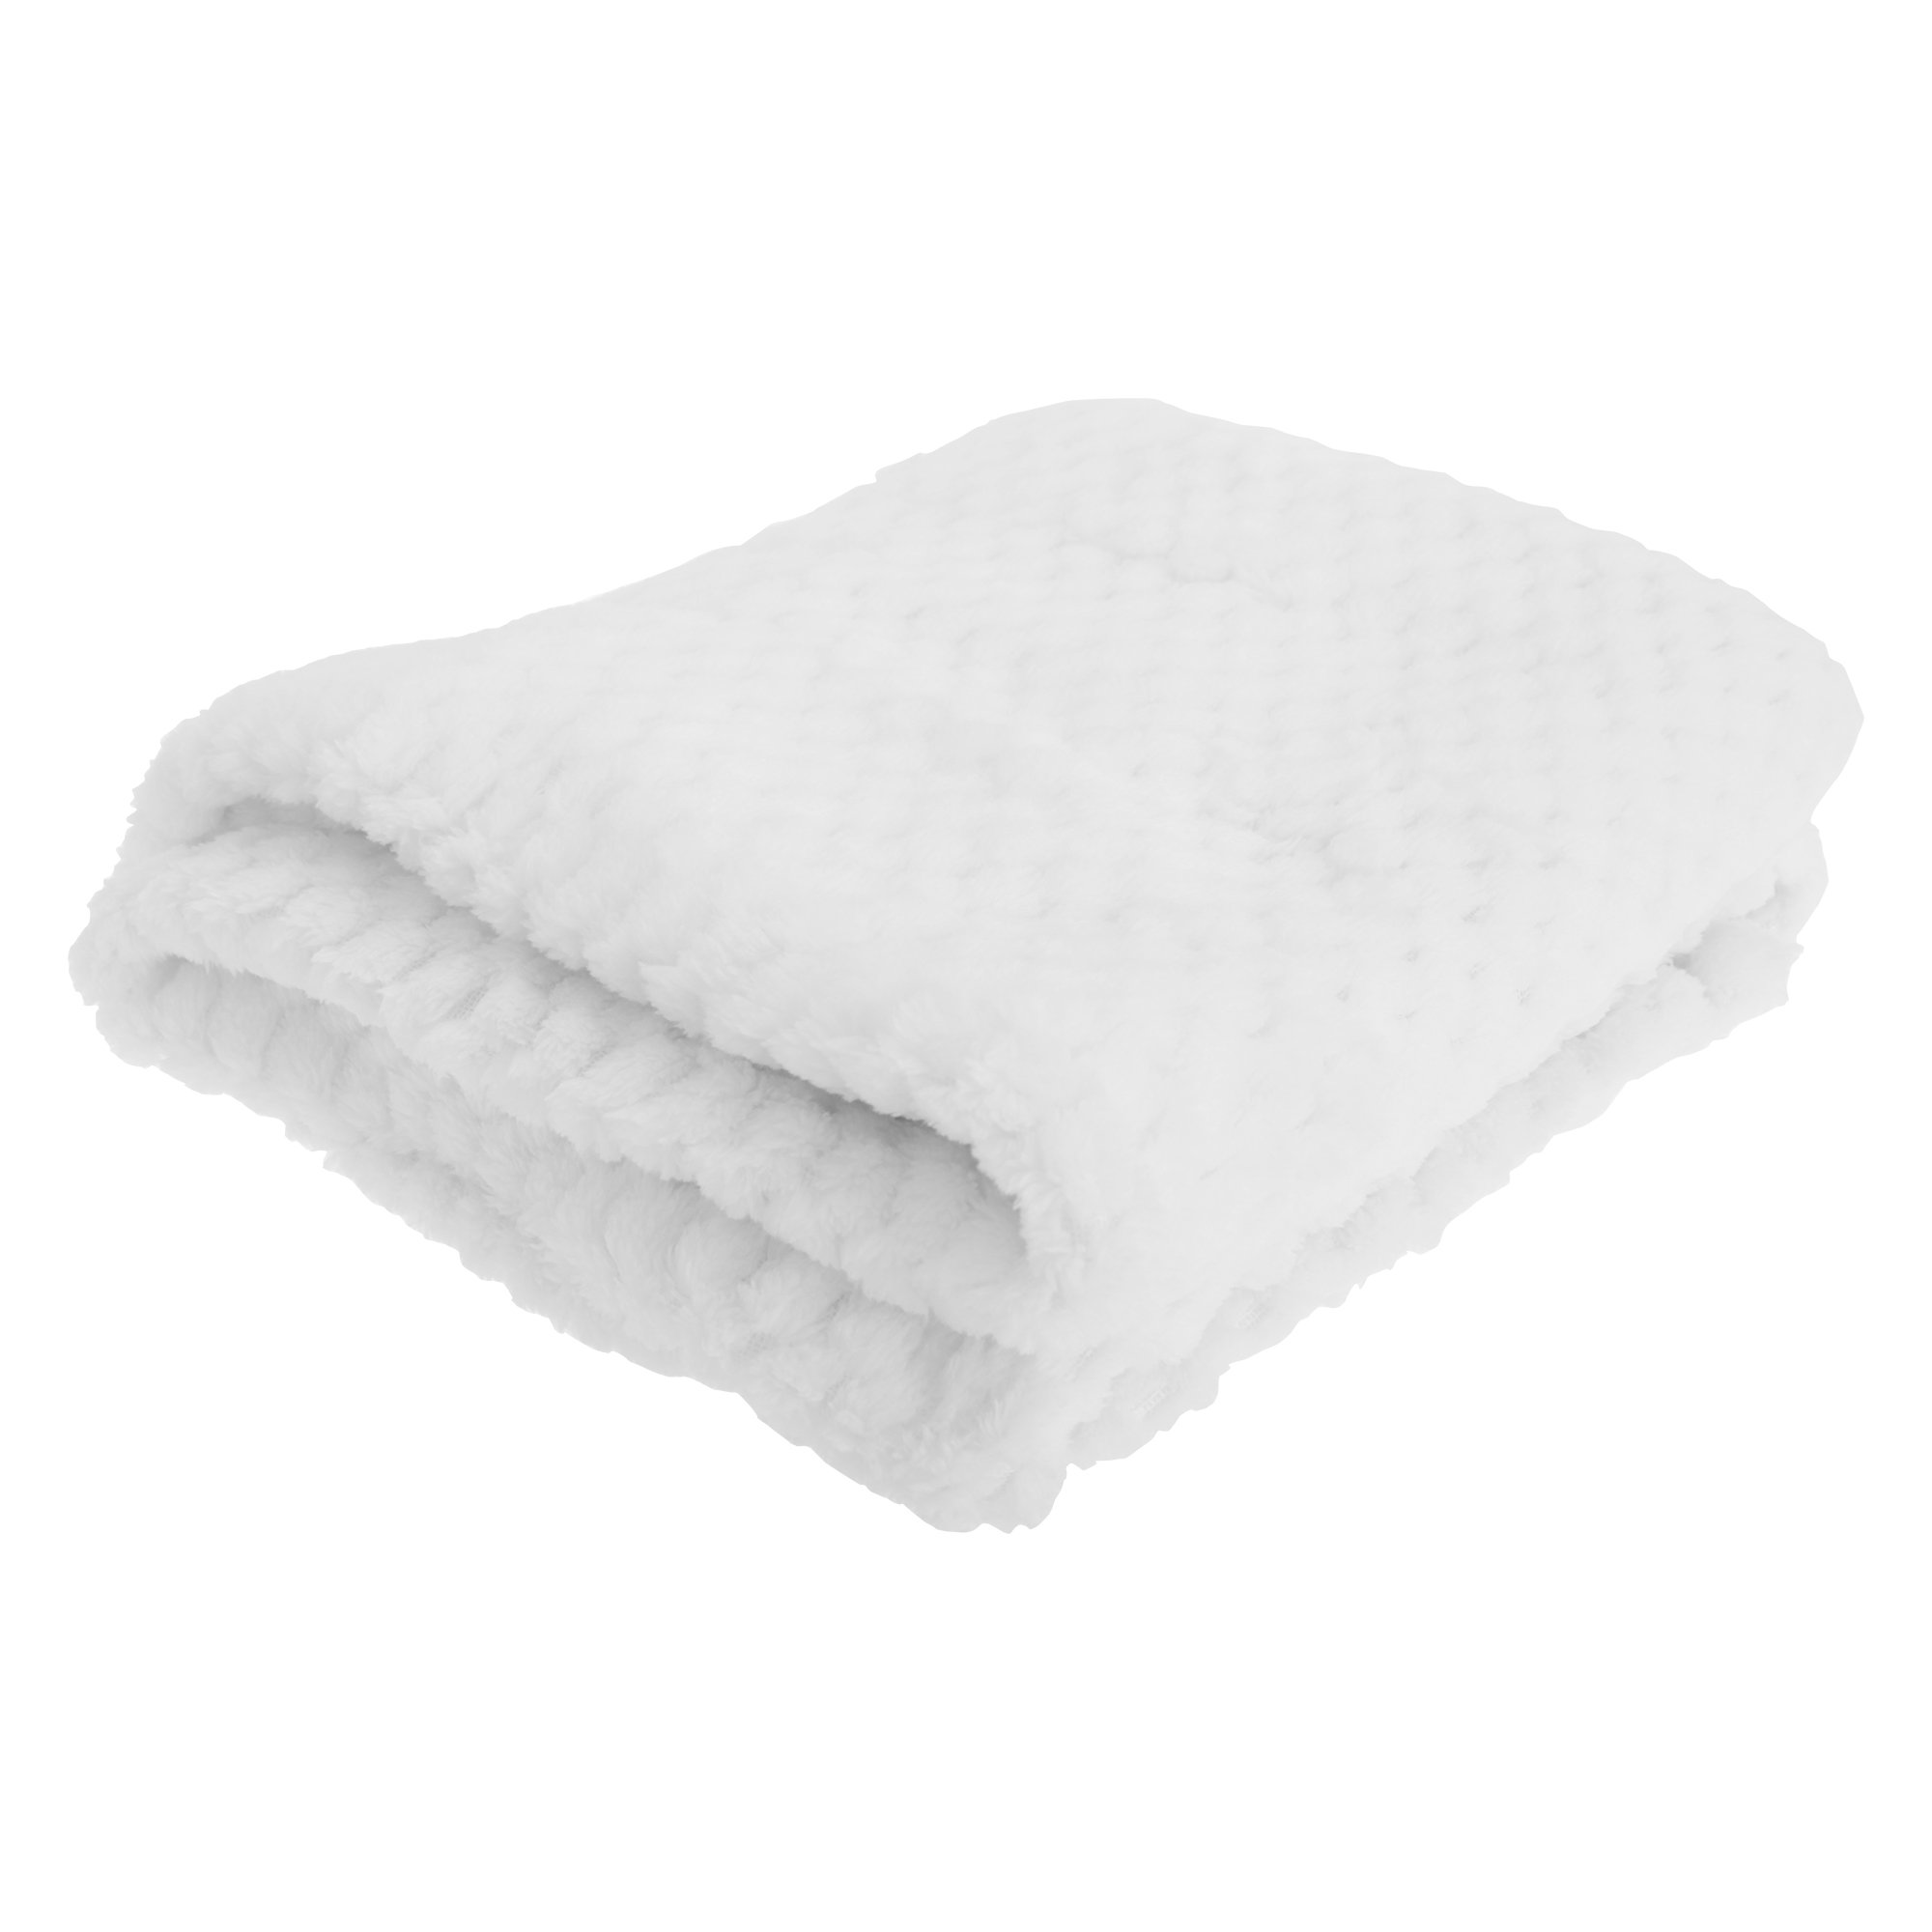 Baby Boys/Girls Supersoft Waffle Textured Blanket (29.5 x 35.4in) (White) product image